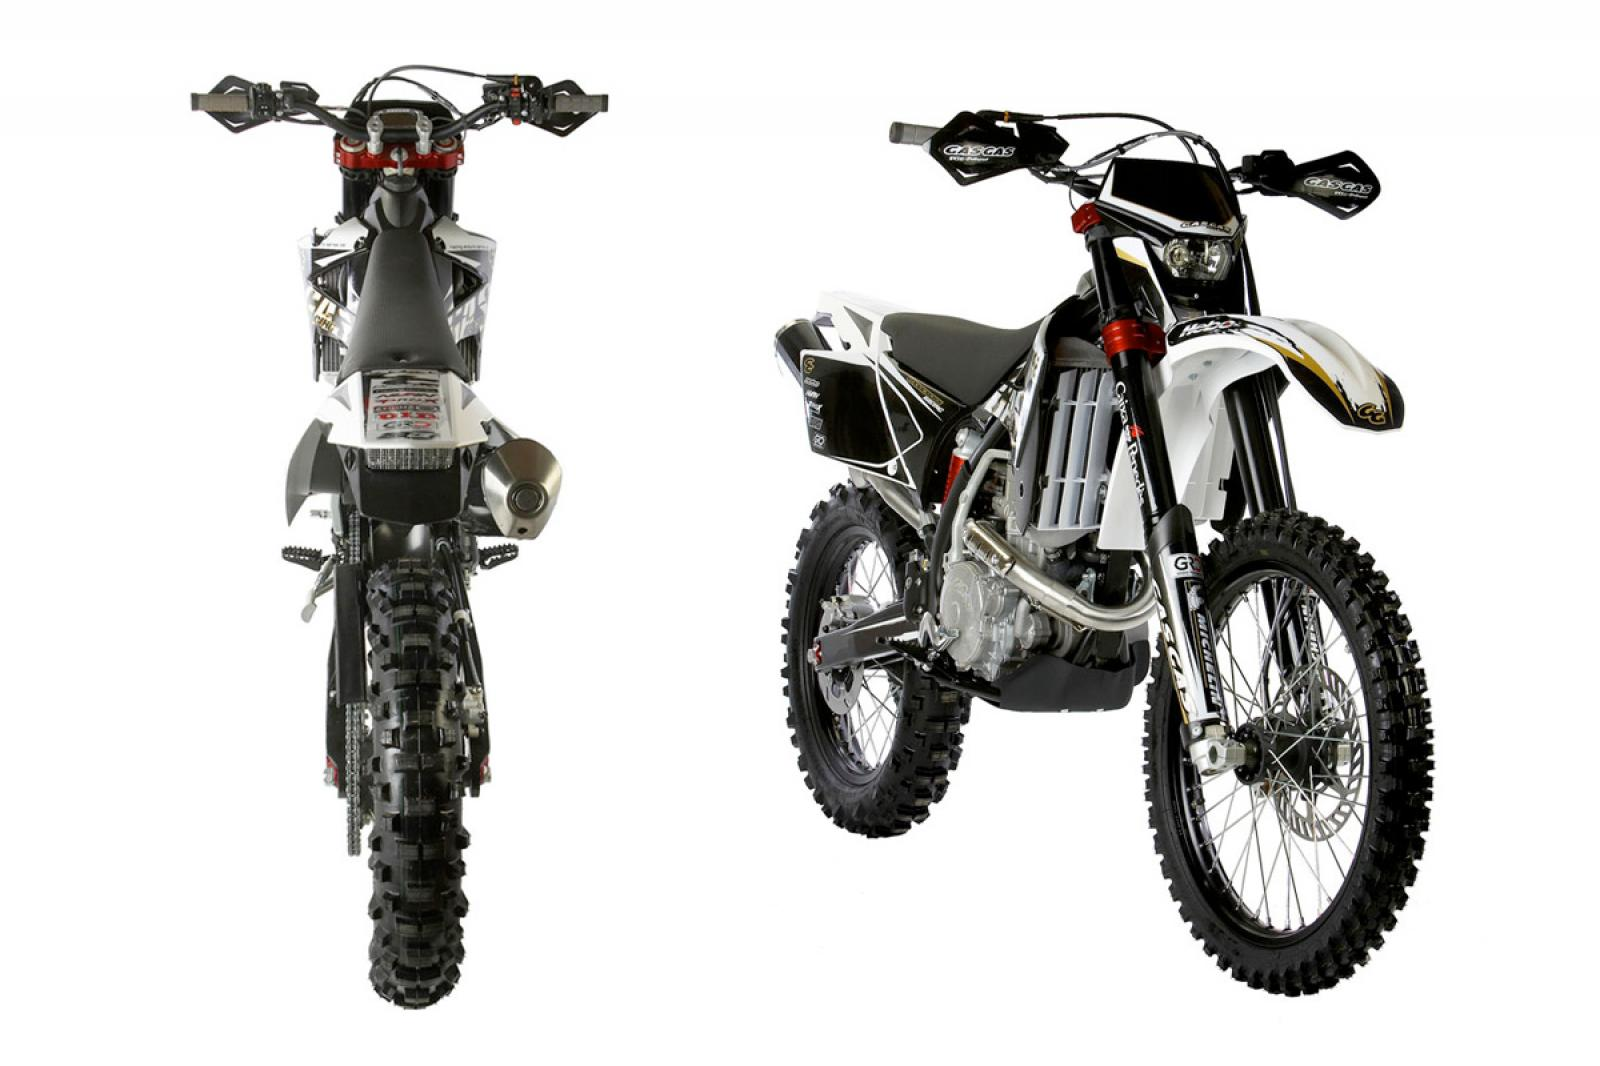 GAS GAS SM 450 images #95847